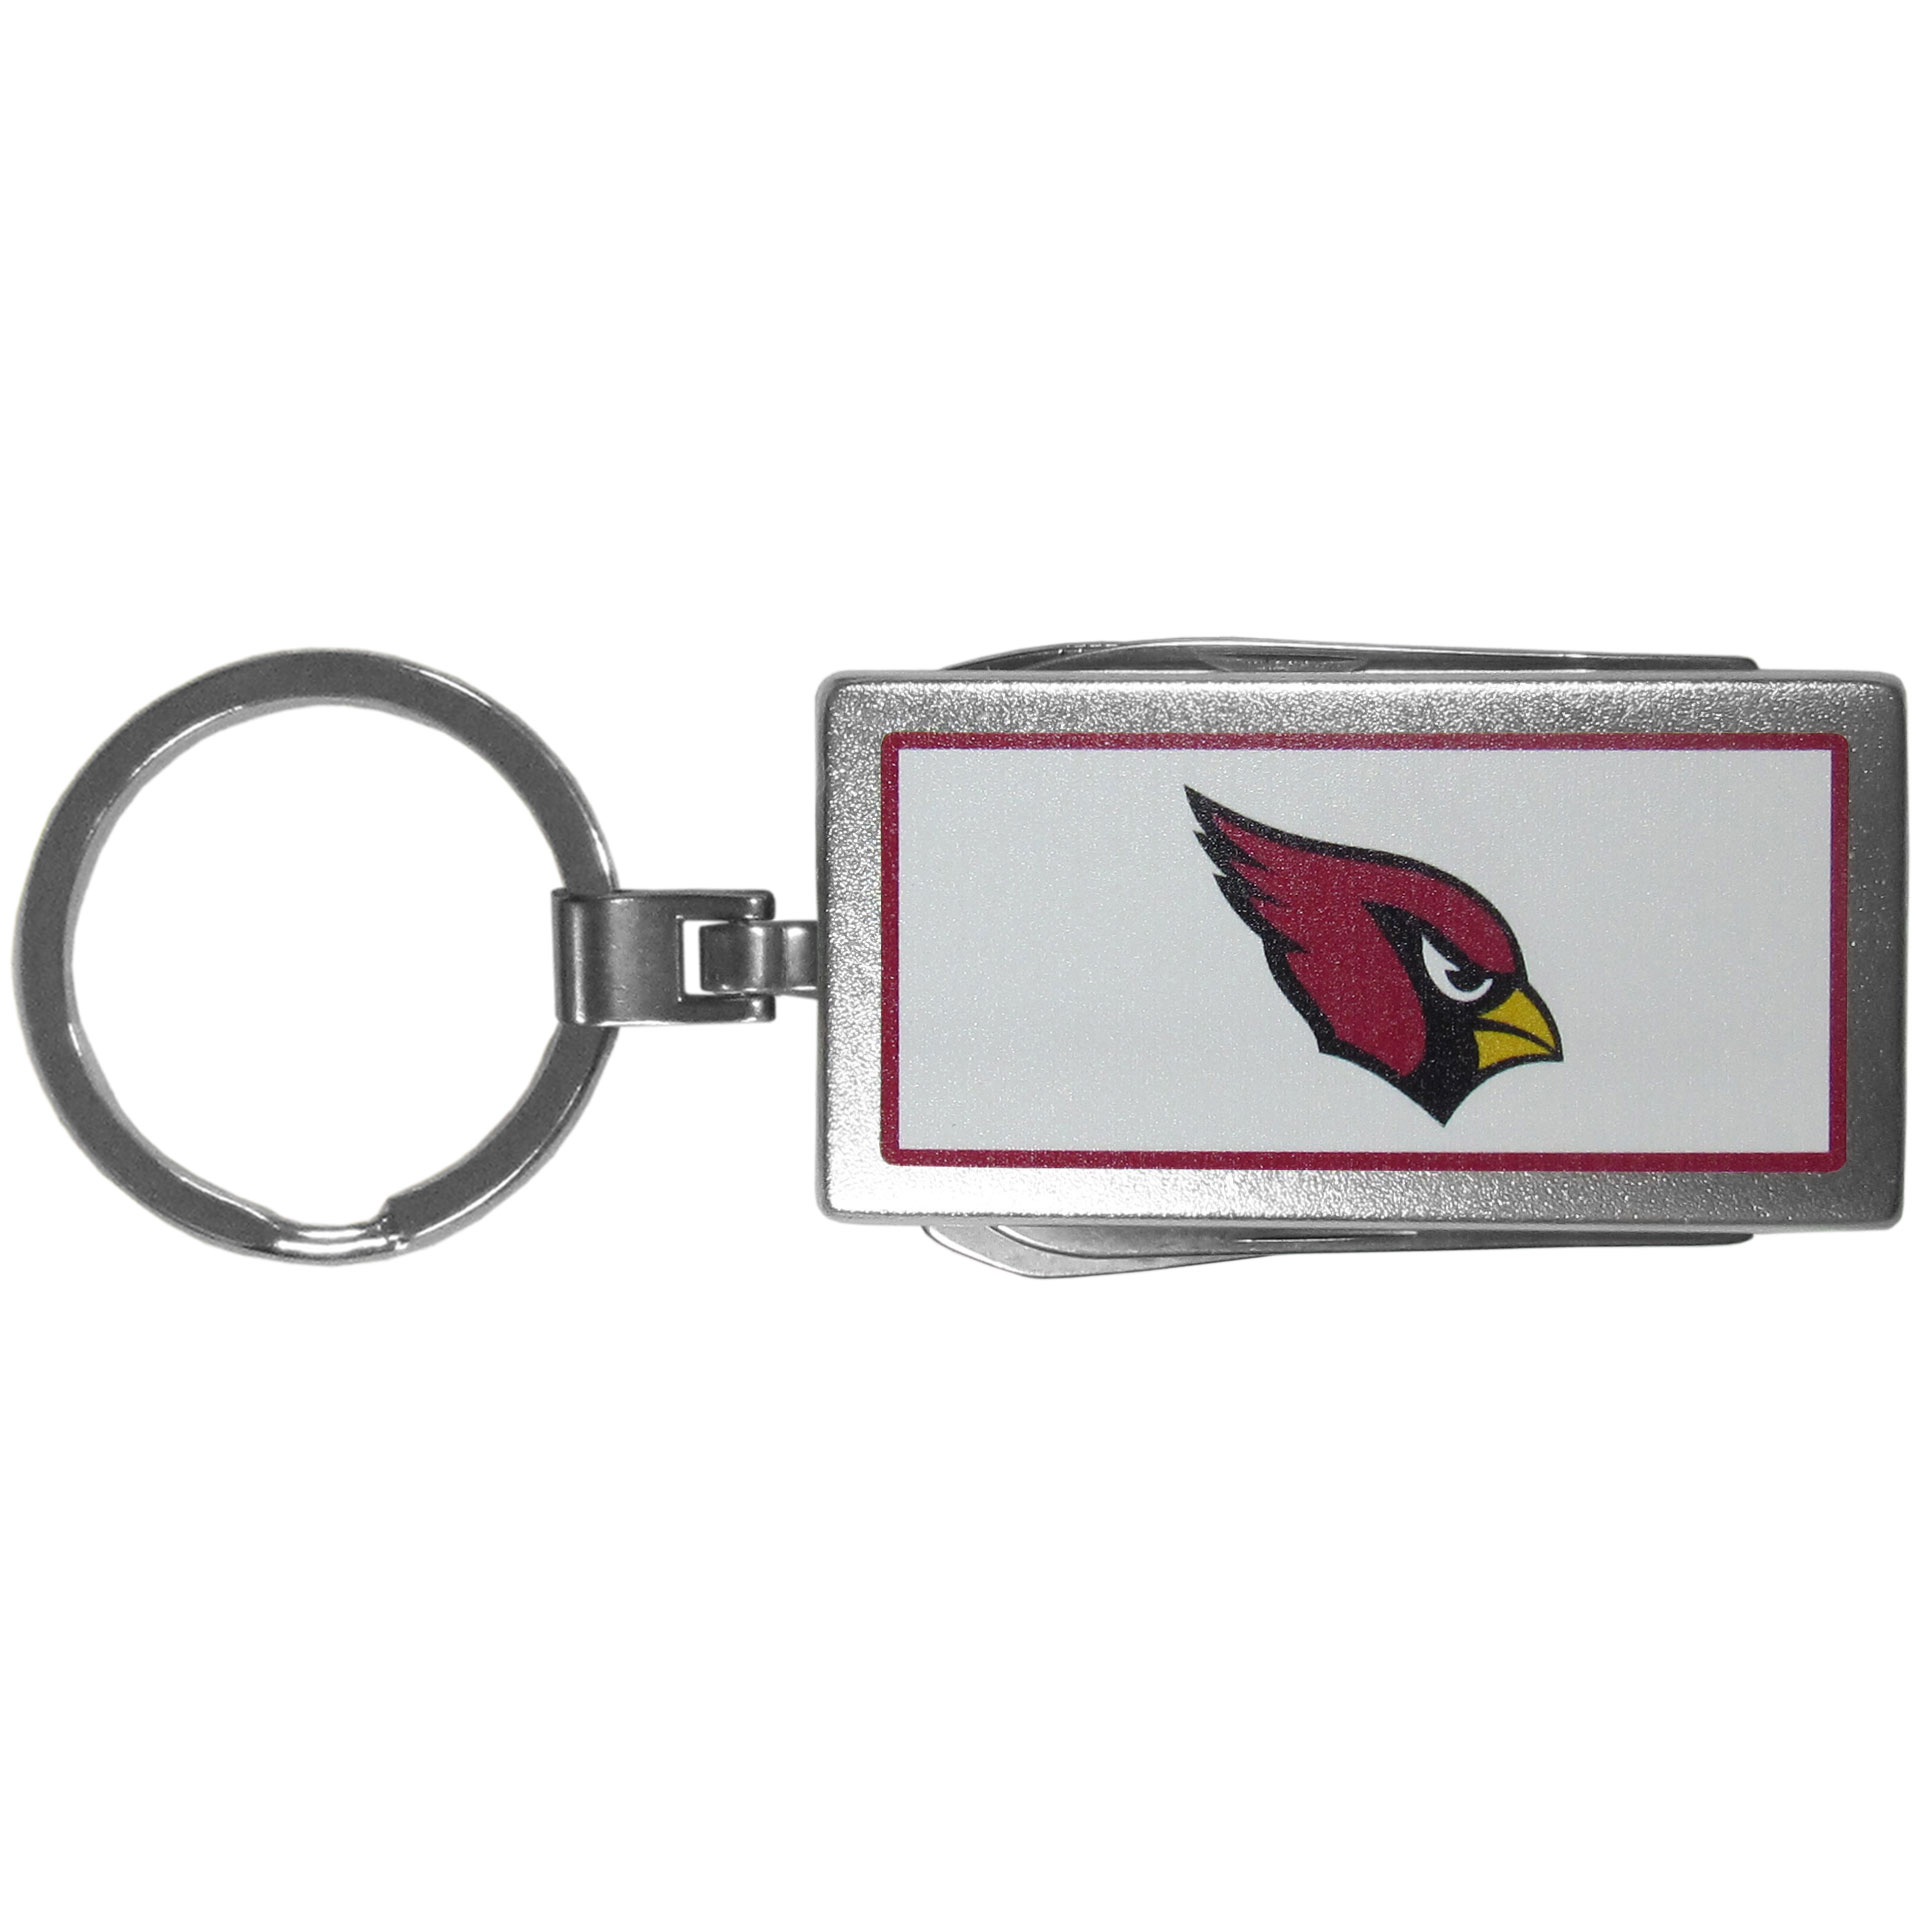 Arizona Cardinals Multi-tool Key Chain, Logo - Be the hero at the tailgate, camping, or on a Friday night with your Arizona Cardinals Multi-Tool Keychain which comes complete with bottle opener, scissors, knife, nail file and screw driver. Be it opening a package or a beverage Siskiyou's Multi-Tool Keychain goes wherever your keys do. The keychain hangs at 4 inches long when closed.